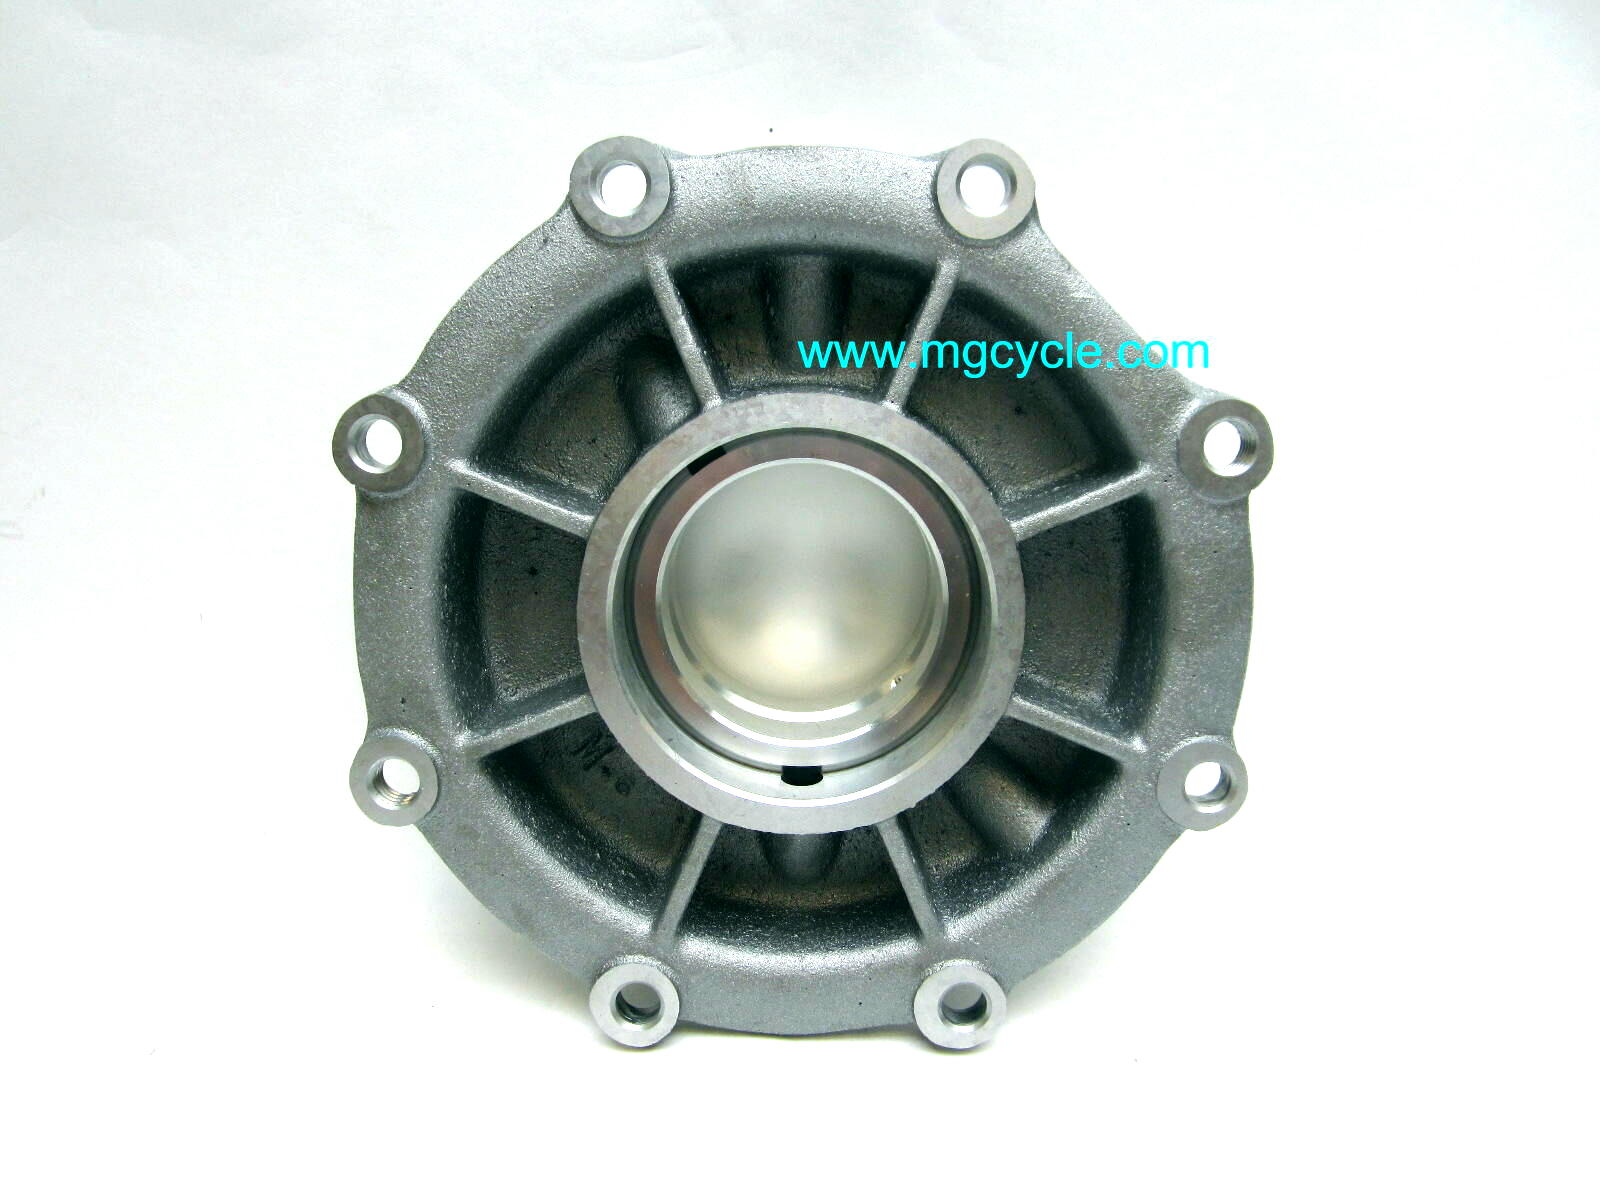 Rear main bearing 3rd undersize 1967-2010 Big Twinis GU12011403